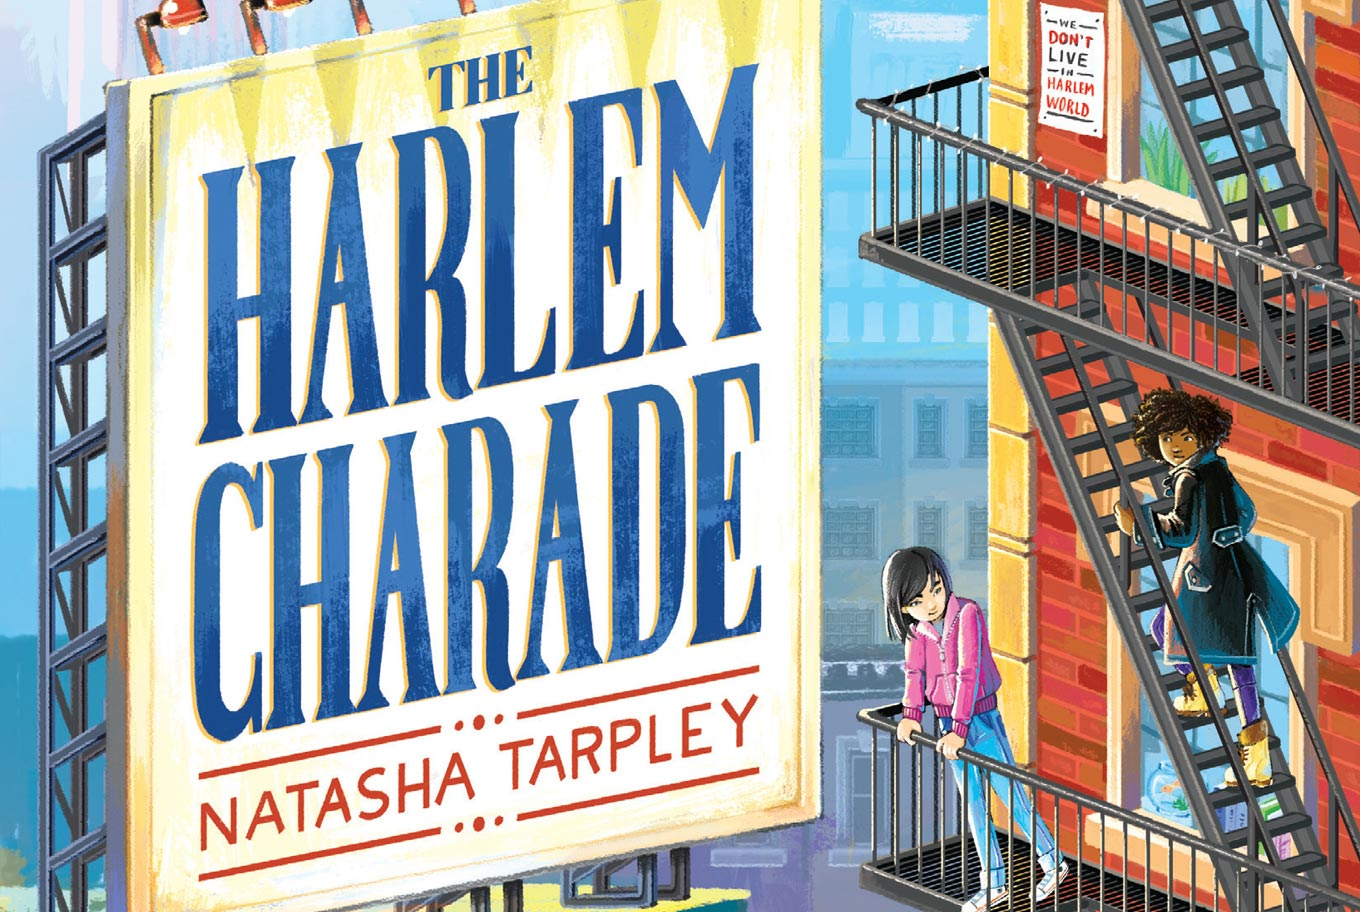 Harlem Charade cover detail